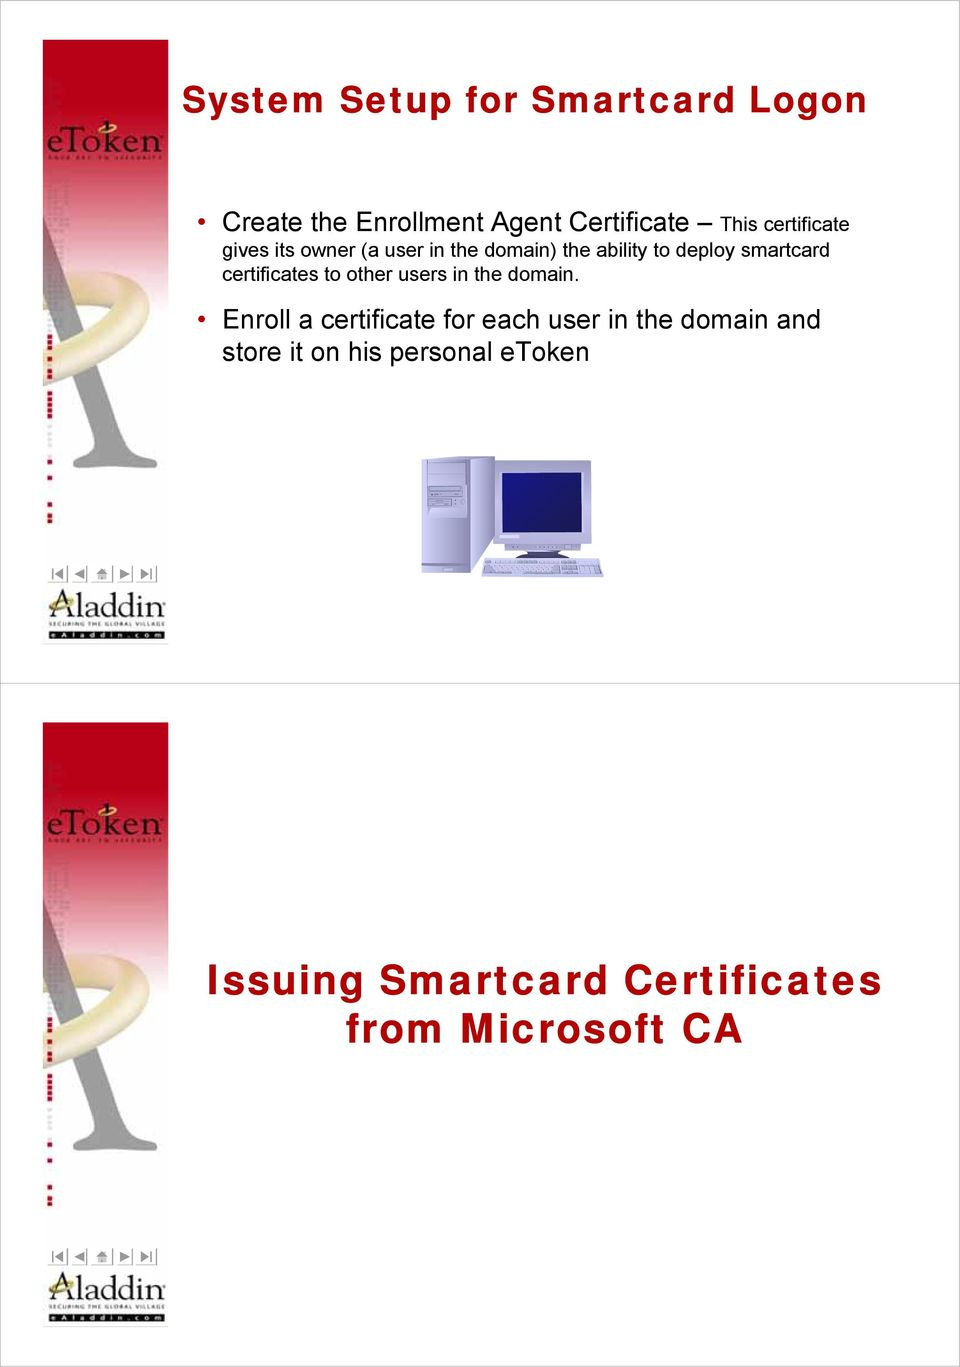 certificates to other users in the domain.